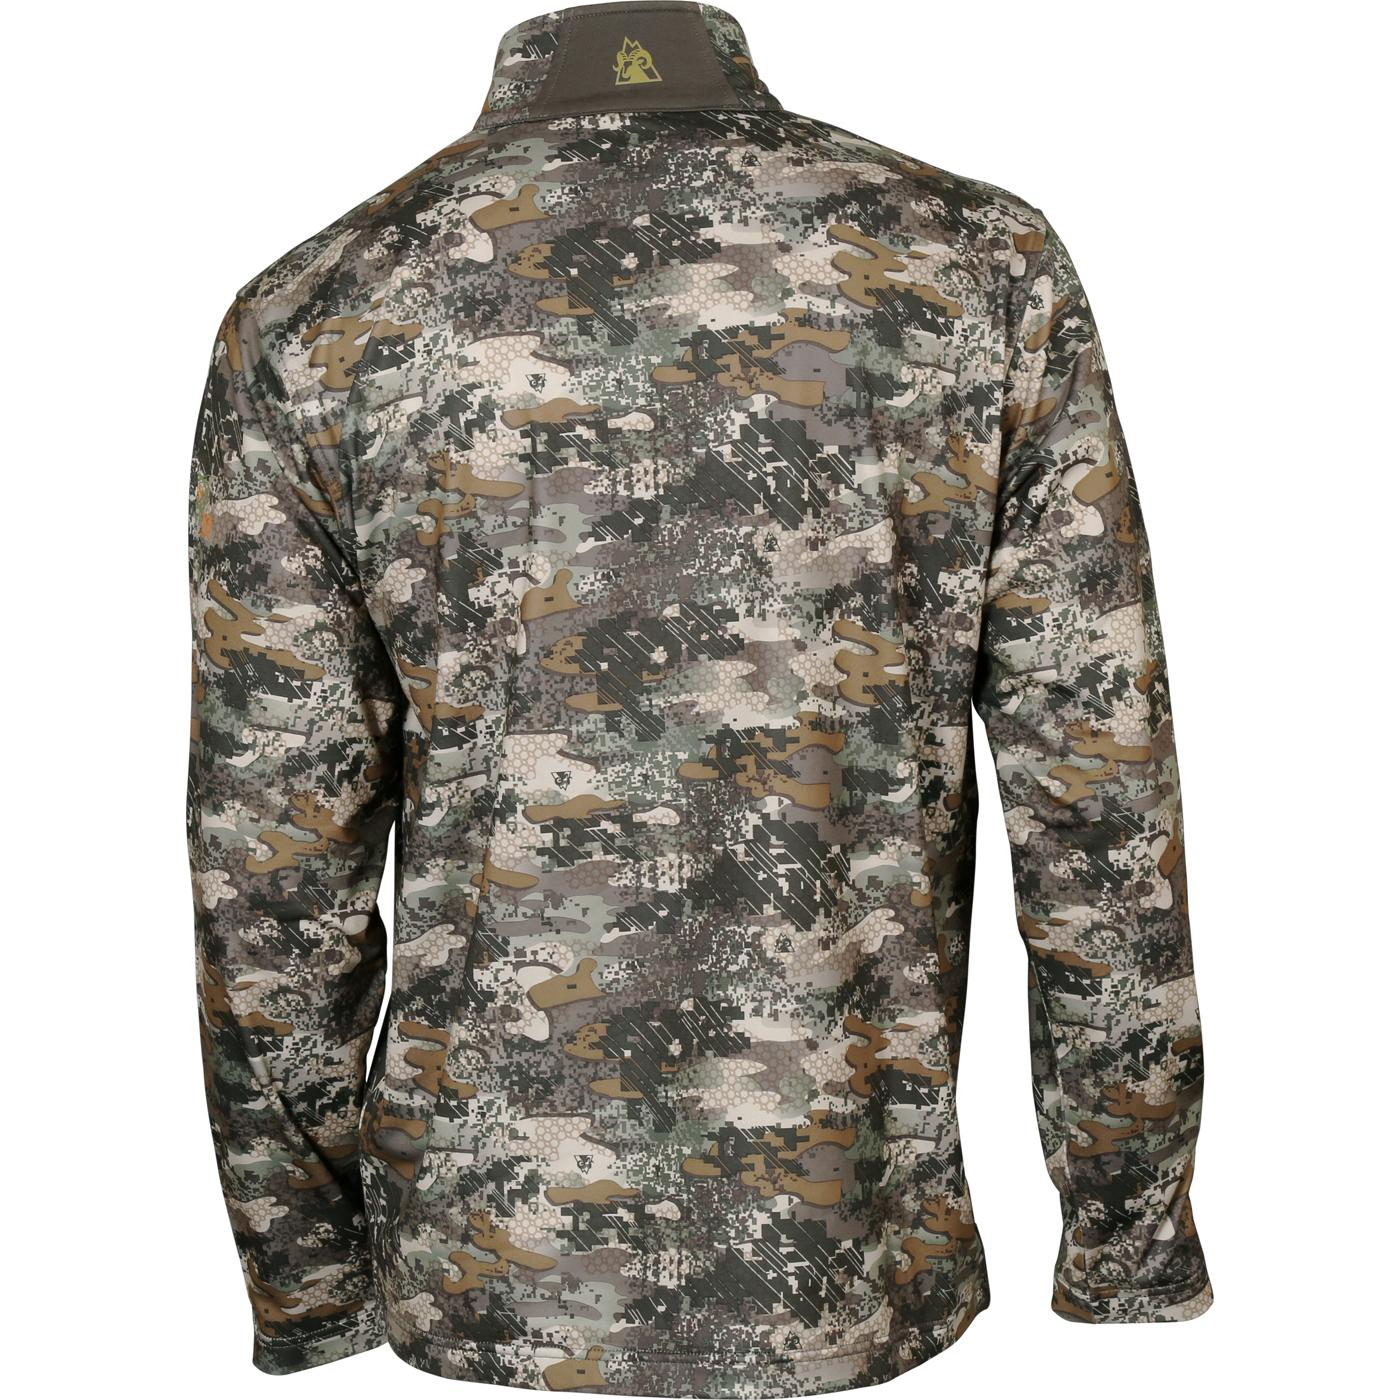 23523a29bc6de Rocky Camo Men's Fleece 1/4 Zip Shirt - HW00160